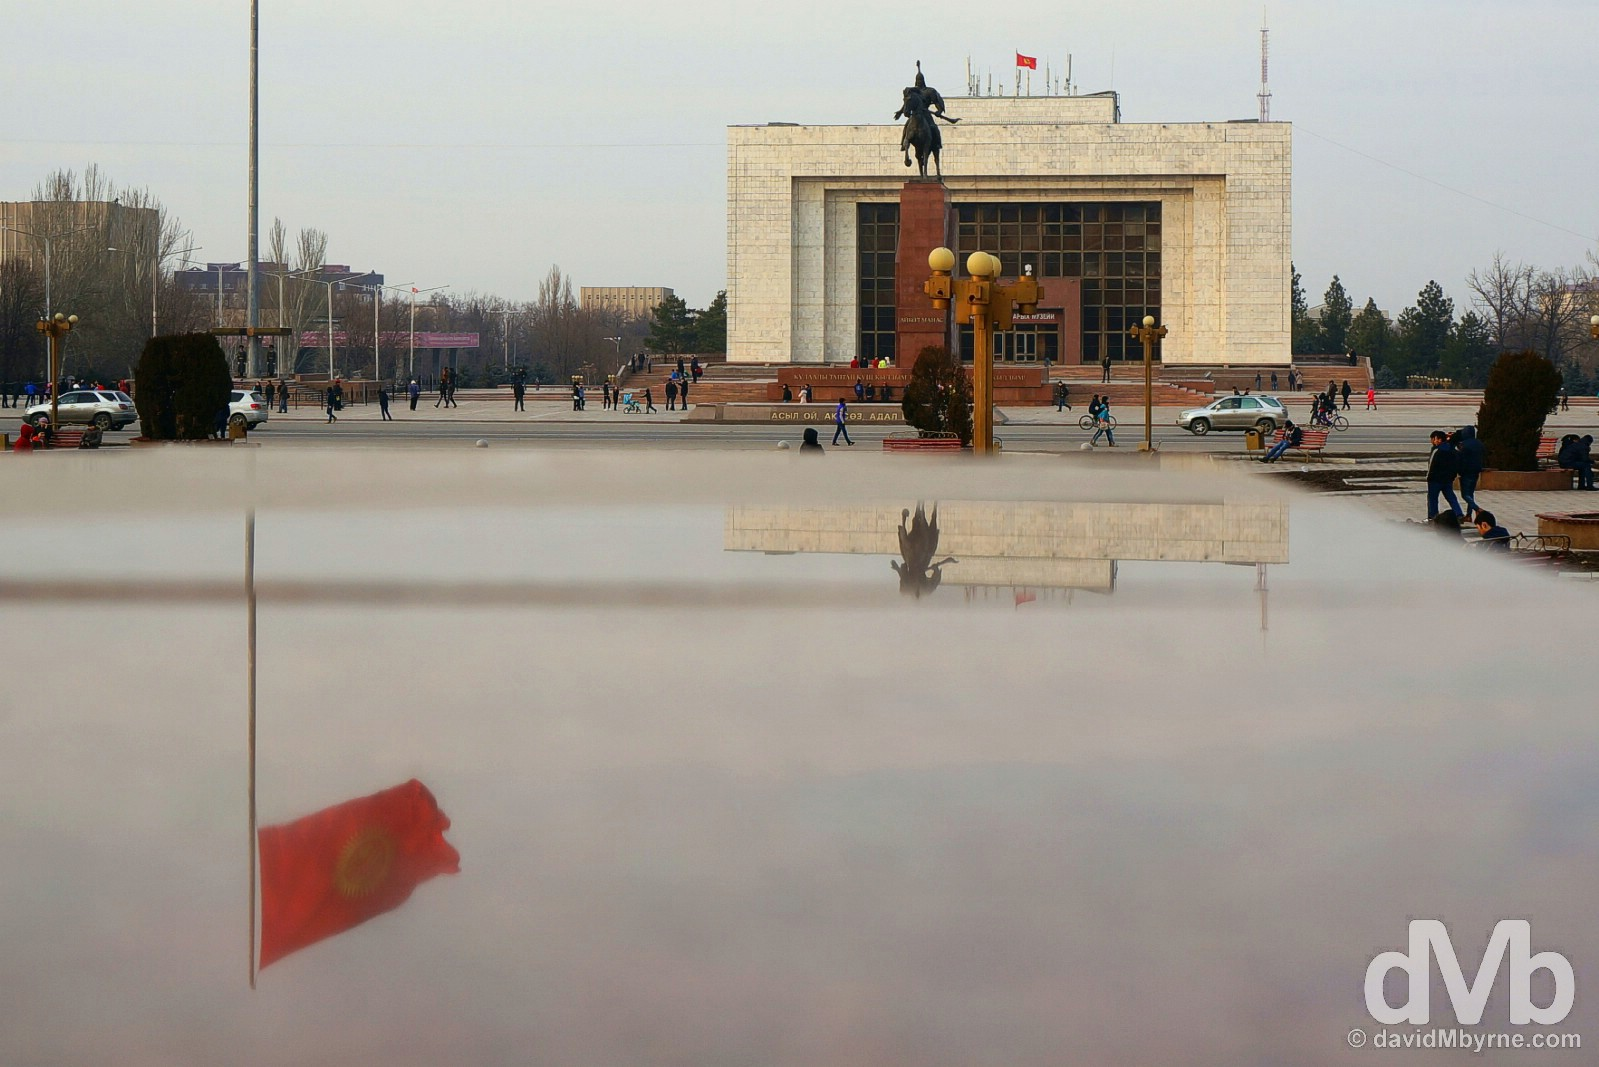 Reflections in Ala-Too Square in central Bishkek, Kyrgyzstan. February 23, 2015.